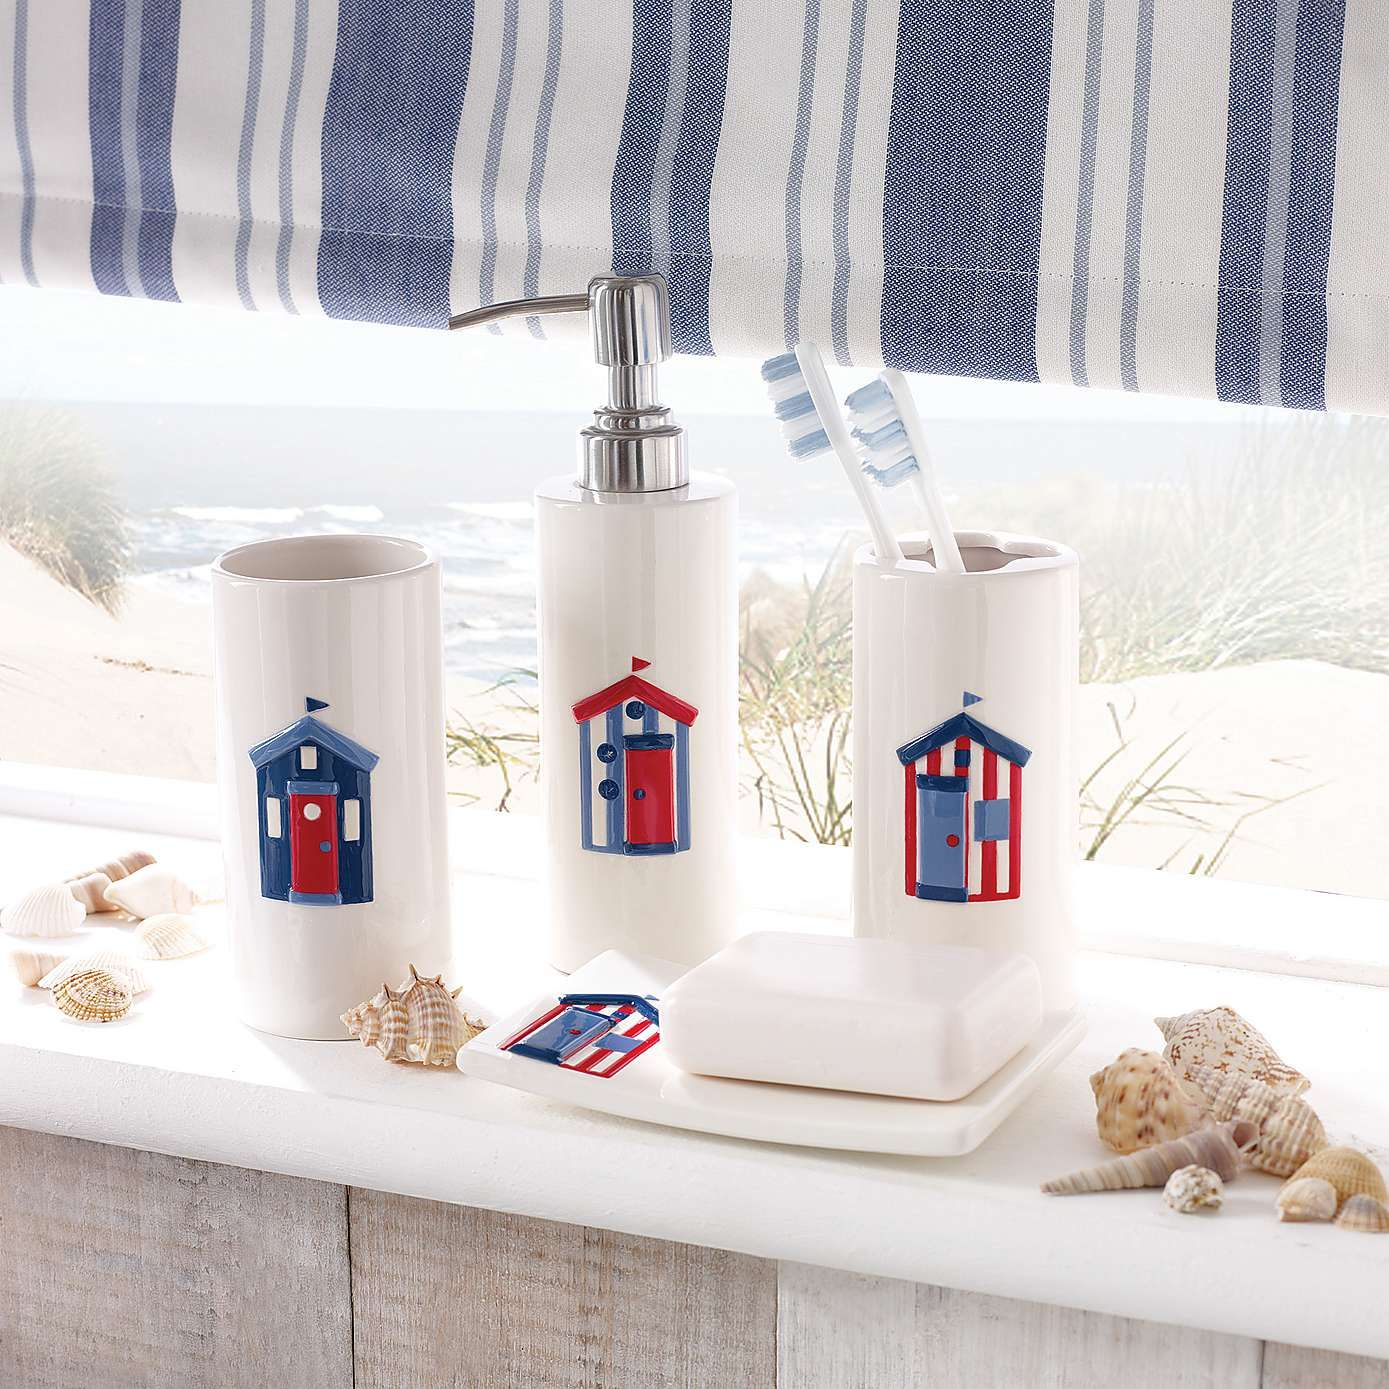 Beach Hut Bathroom Collection Dunelm In 2020 Beach Hut Bathroom Bathroom Collections Nautical Bathrooms